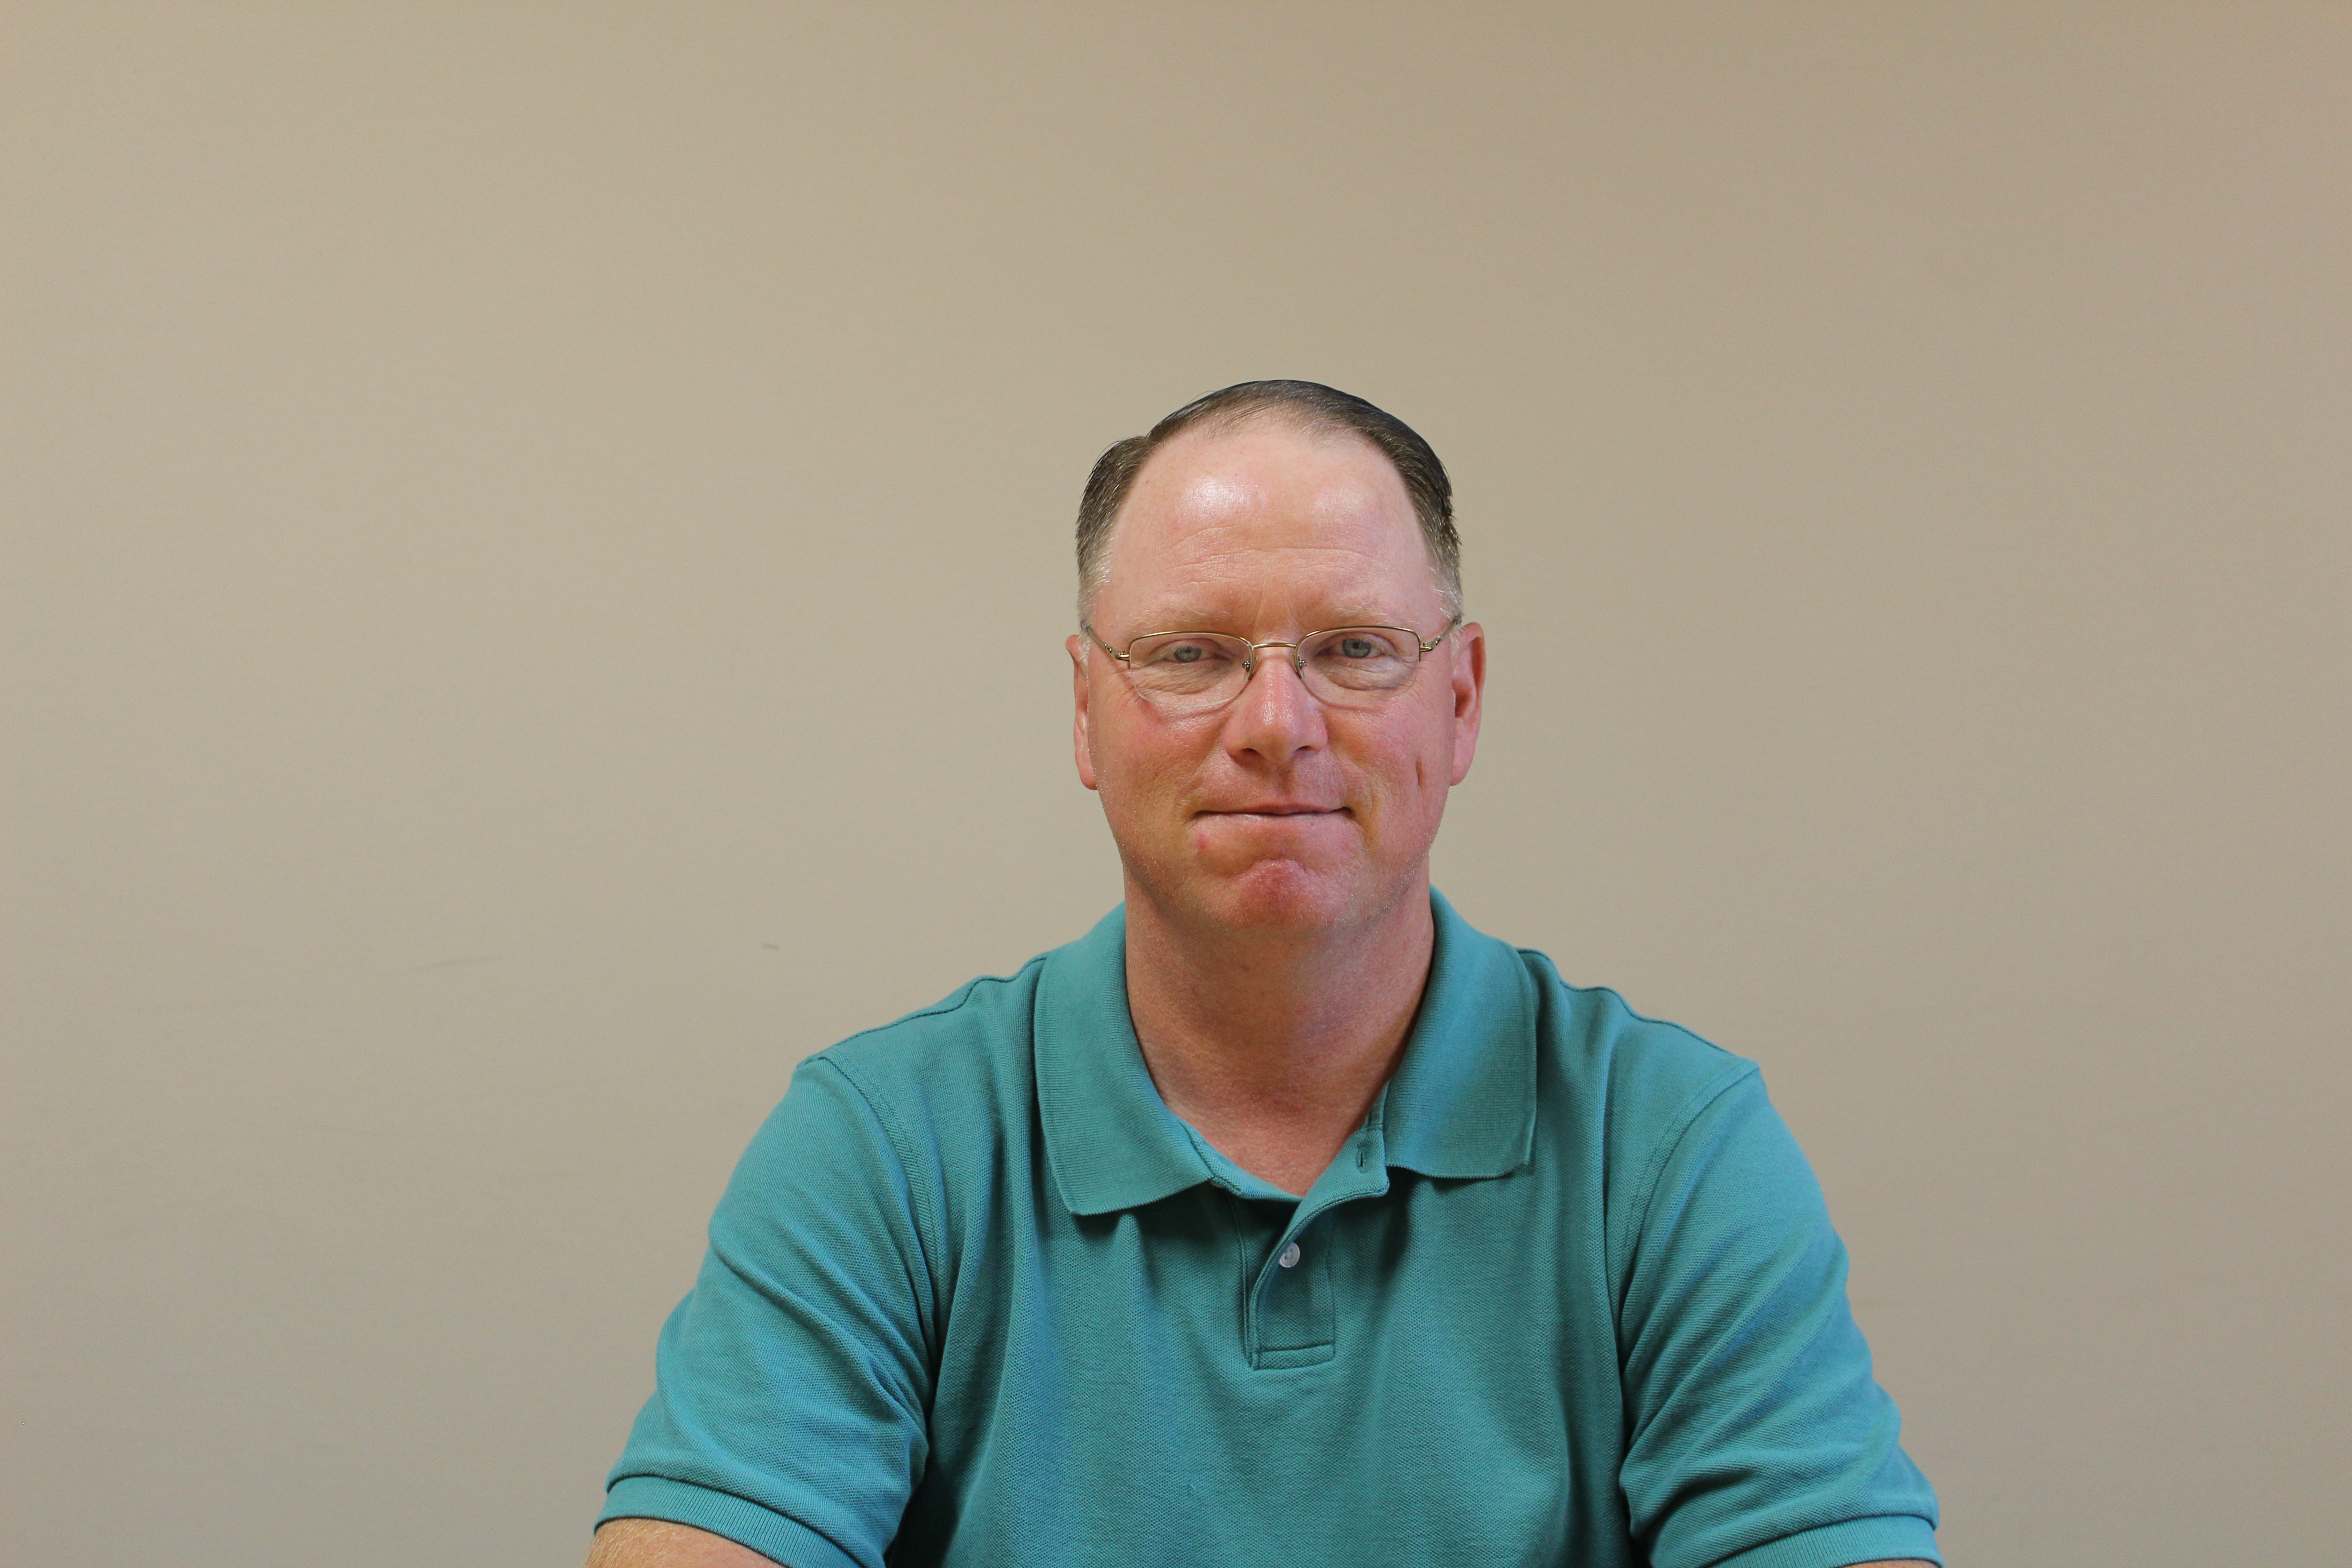 Appointment of Joe Sager to Regional Manager of Stonecreek Ohio & S. Indiana Division